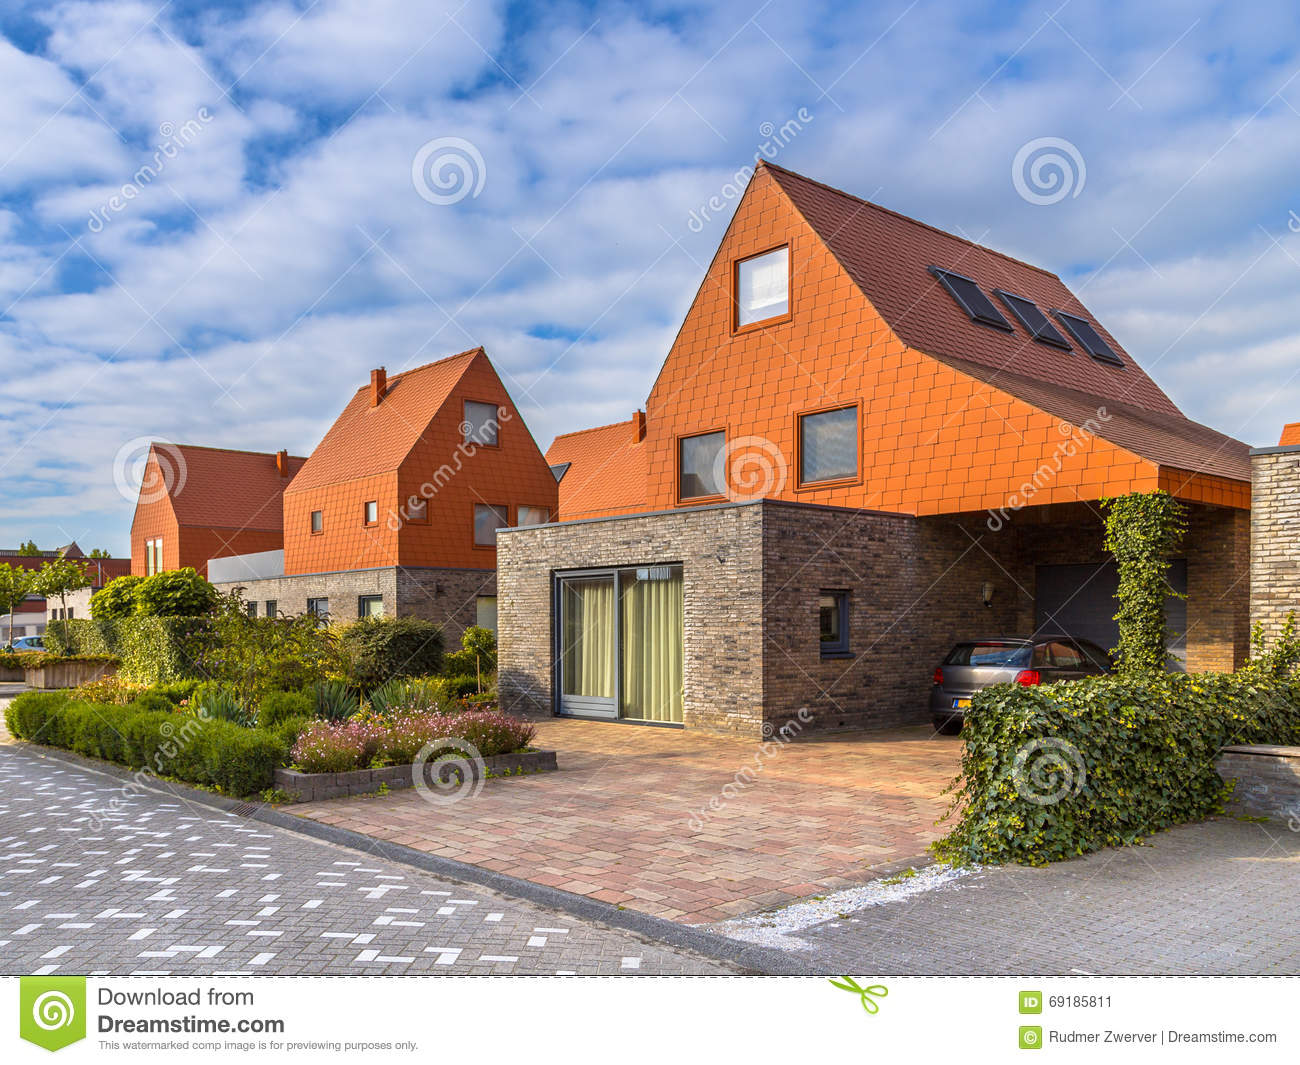 Modern Architecture Roof modern architecture houses with red roof tiles stock photo - image